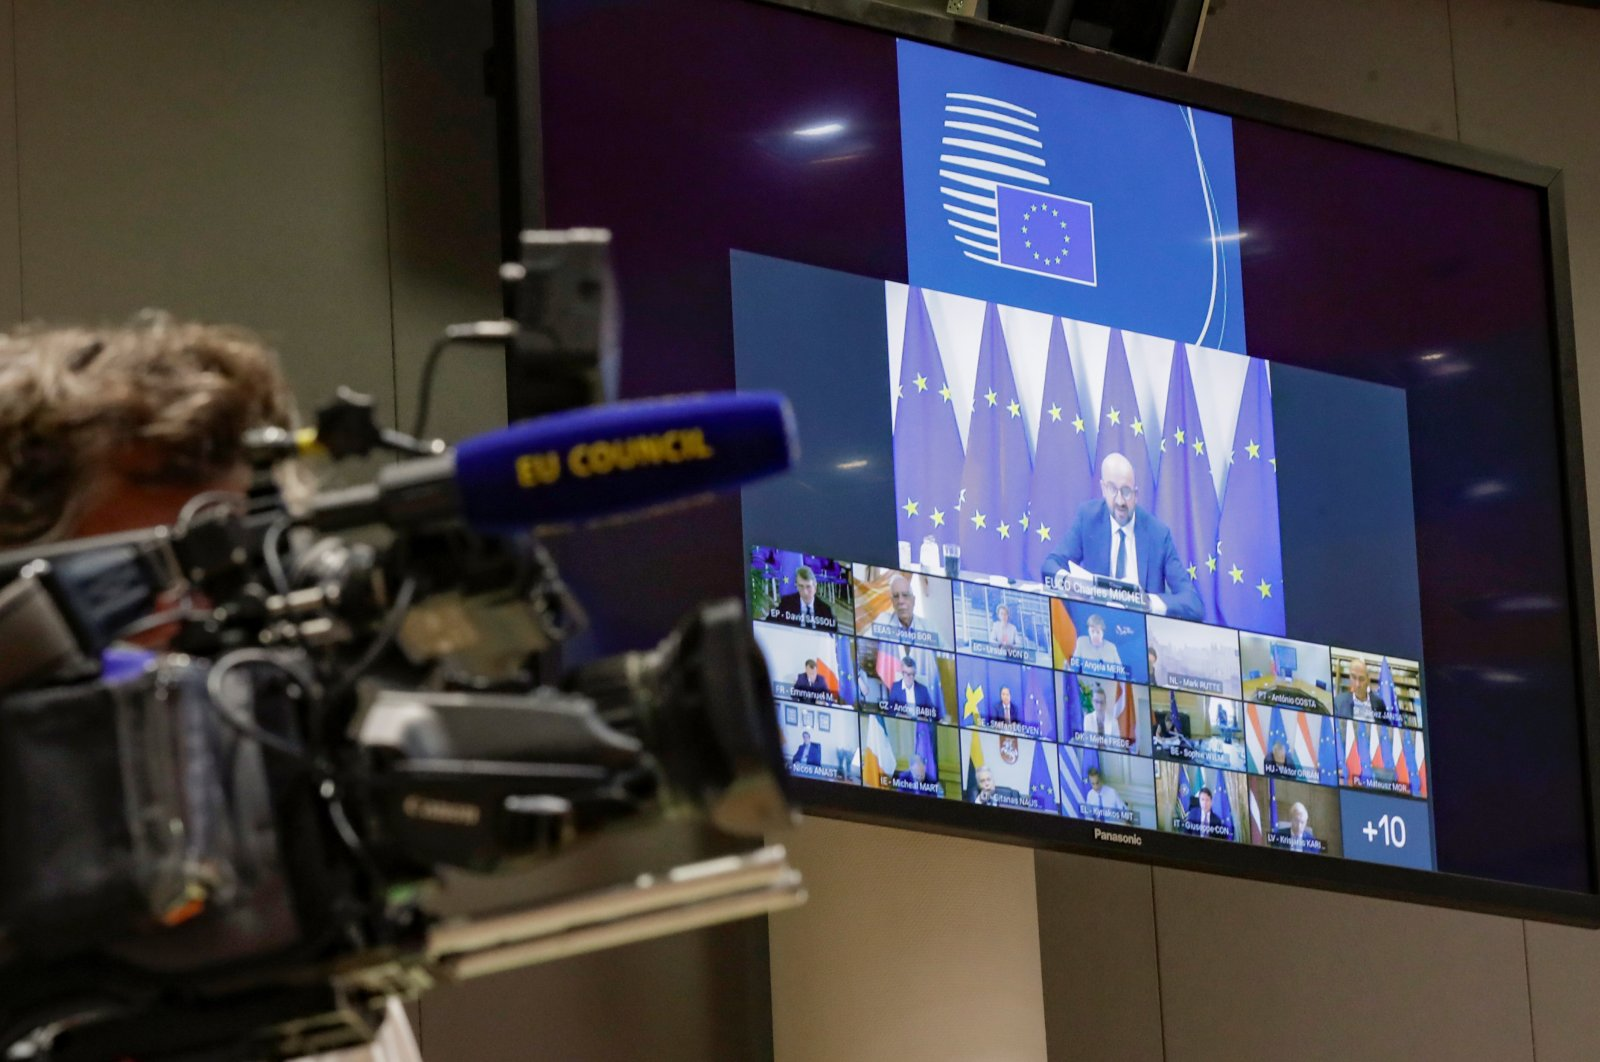 European Council President Charles Michel takes part in a virtual summit with European Commission President Ursula von der Leyen and European leaders to discuss Belarus' situation, in Brussels, Belgium Aug. 19, 2020. (Reuters Photo)